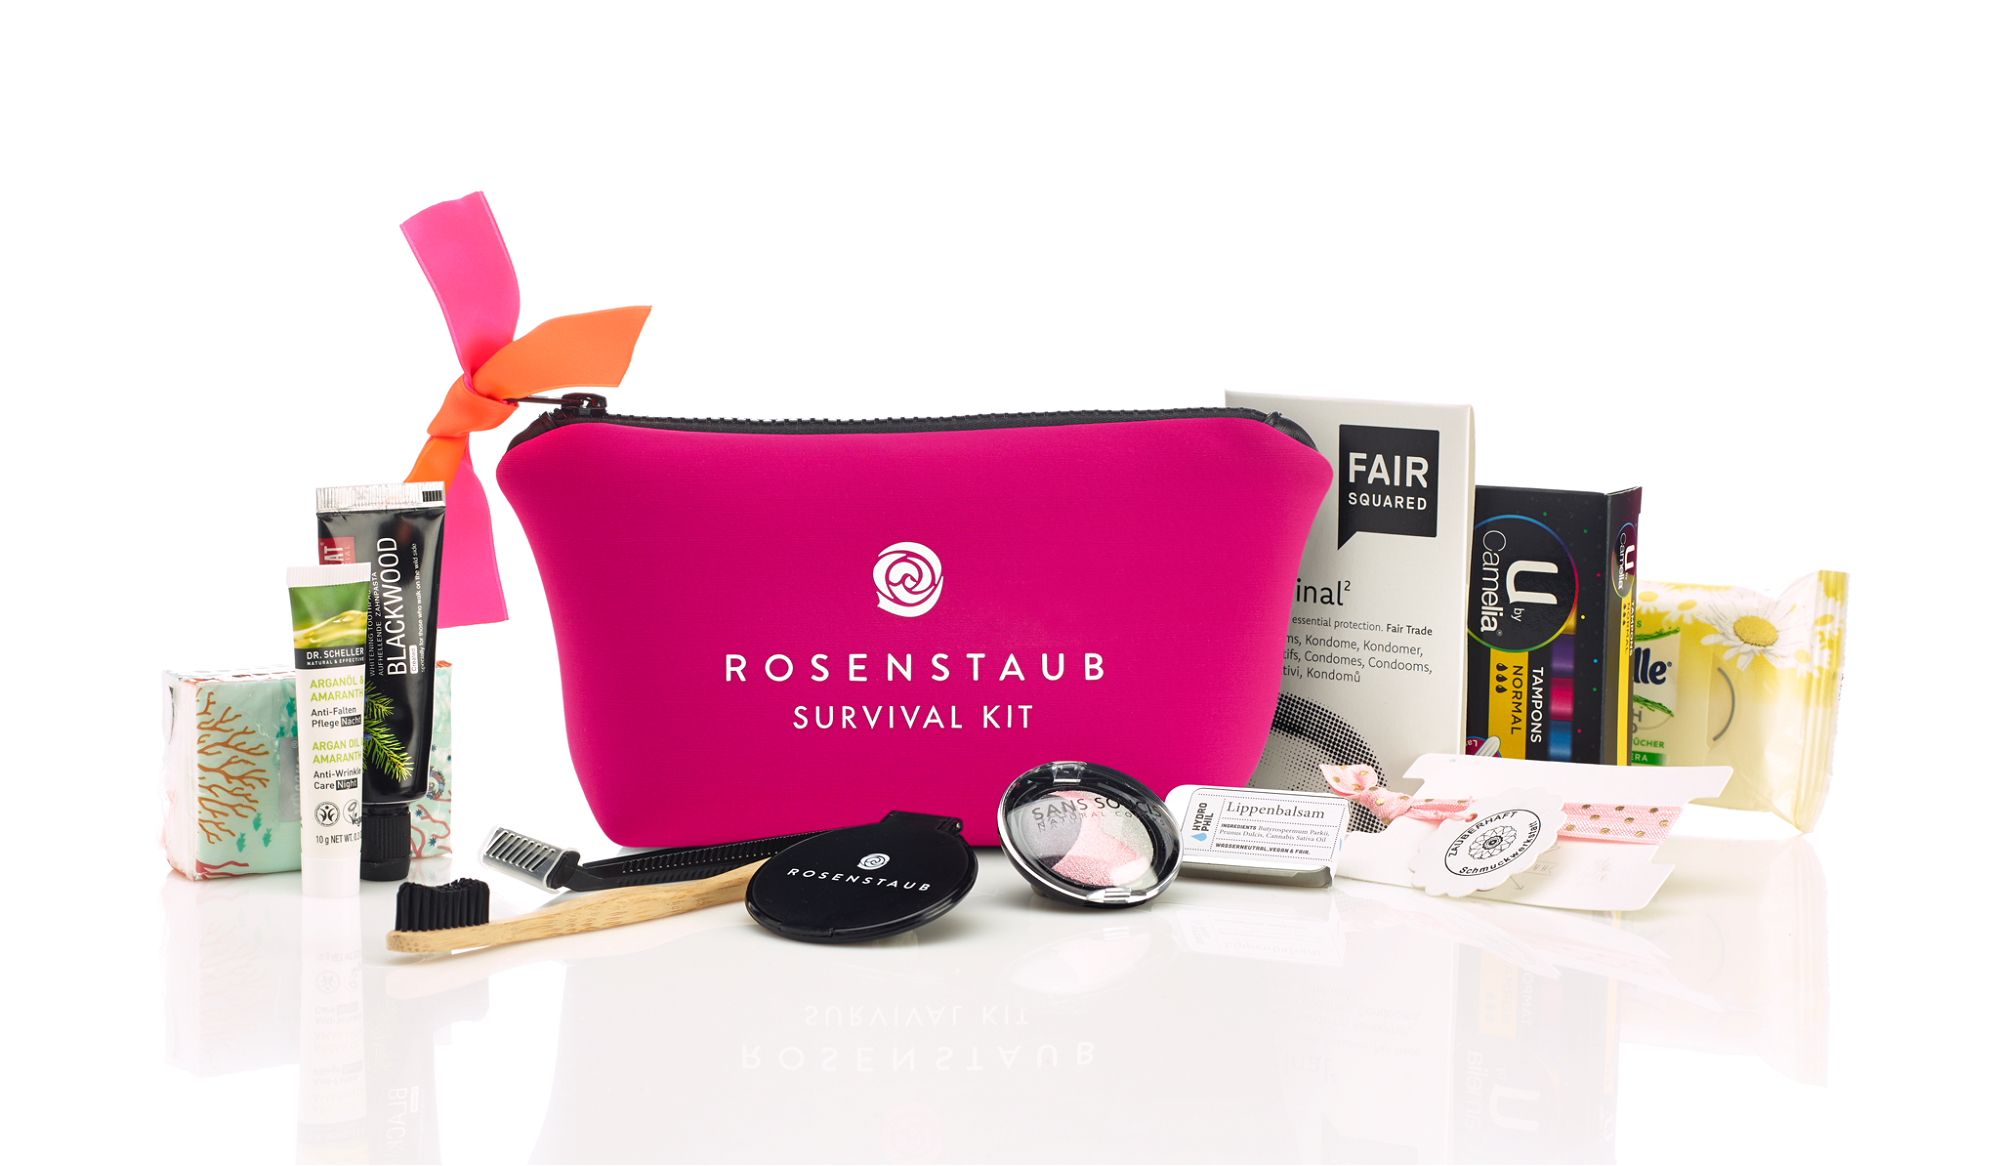 rosenstaub-survival-kit-pink-20171003